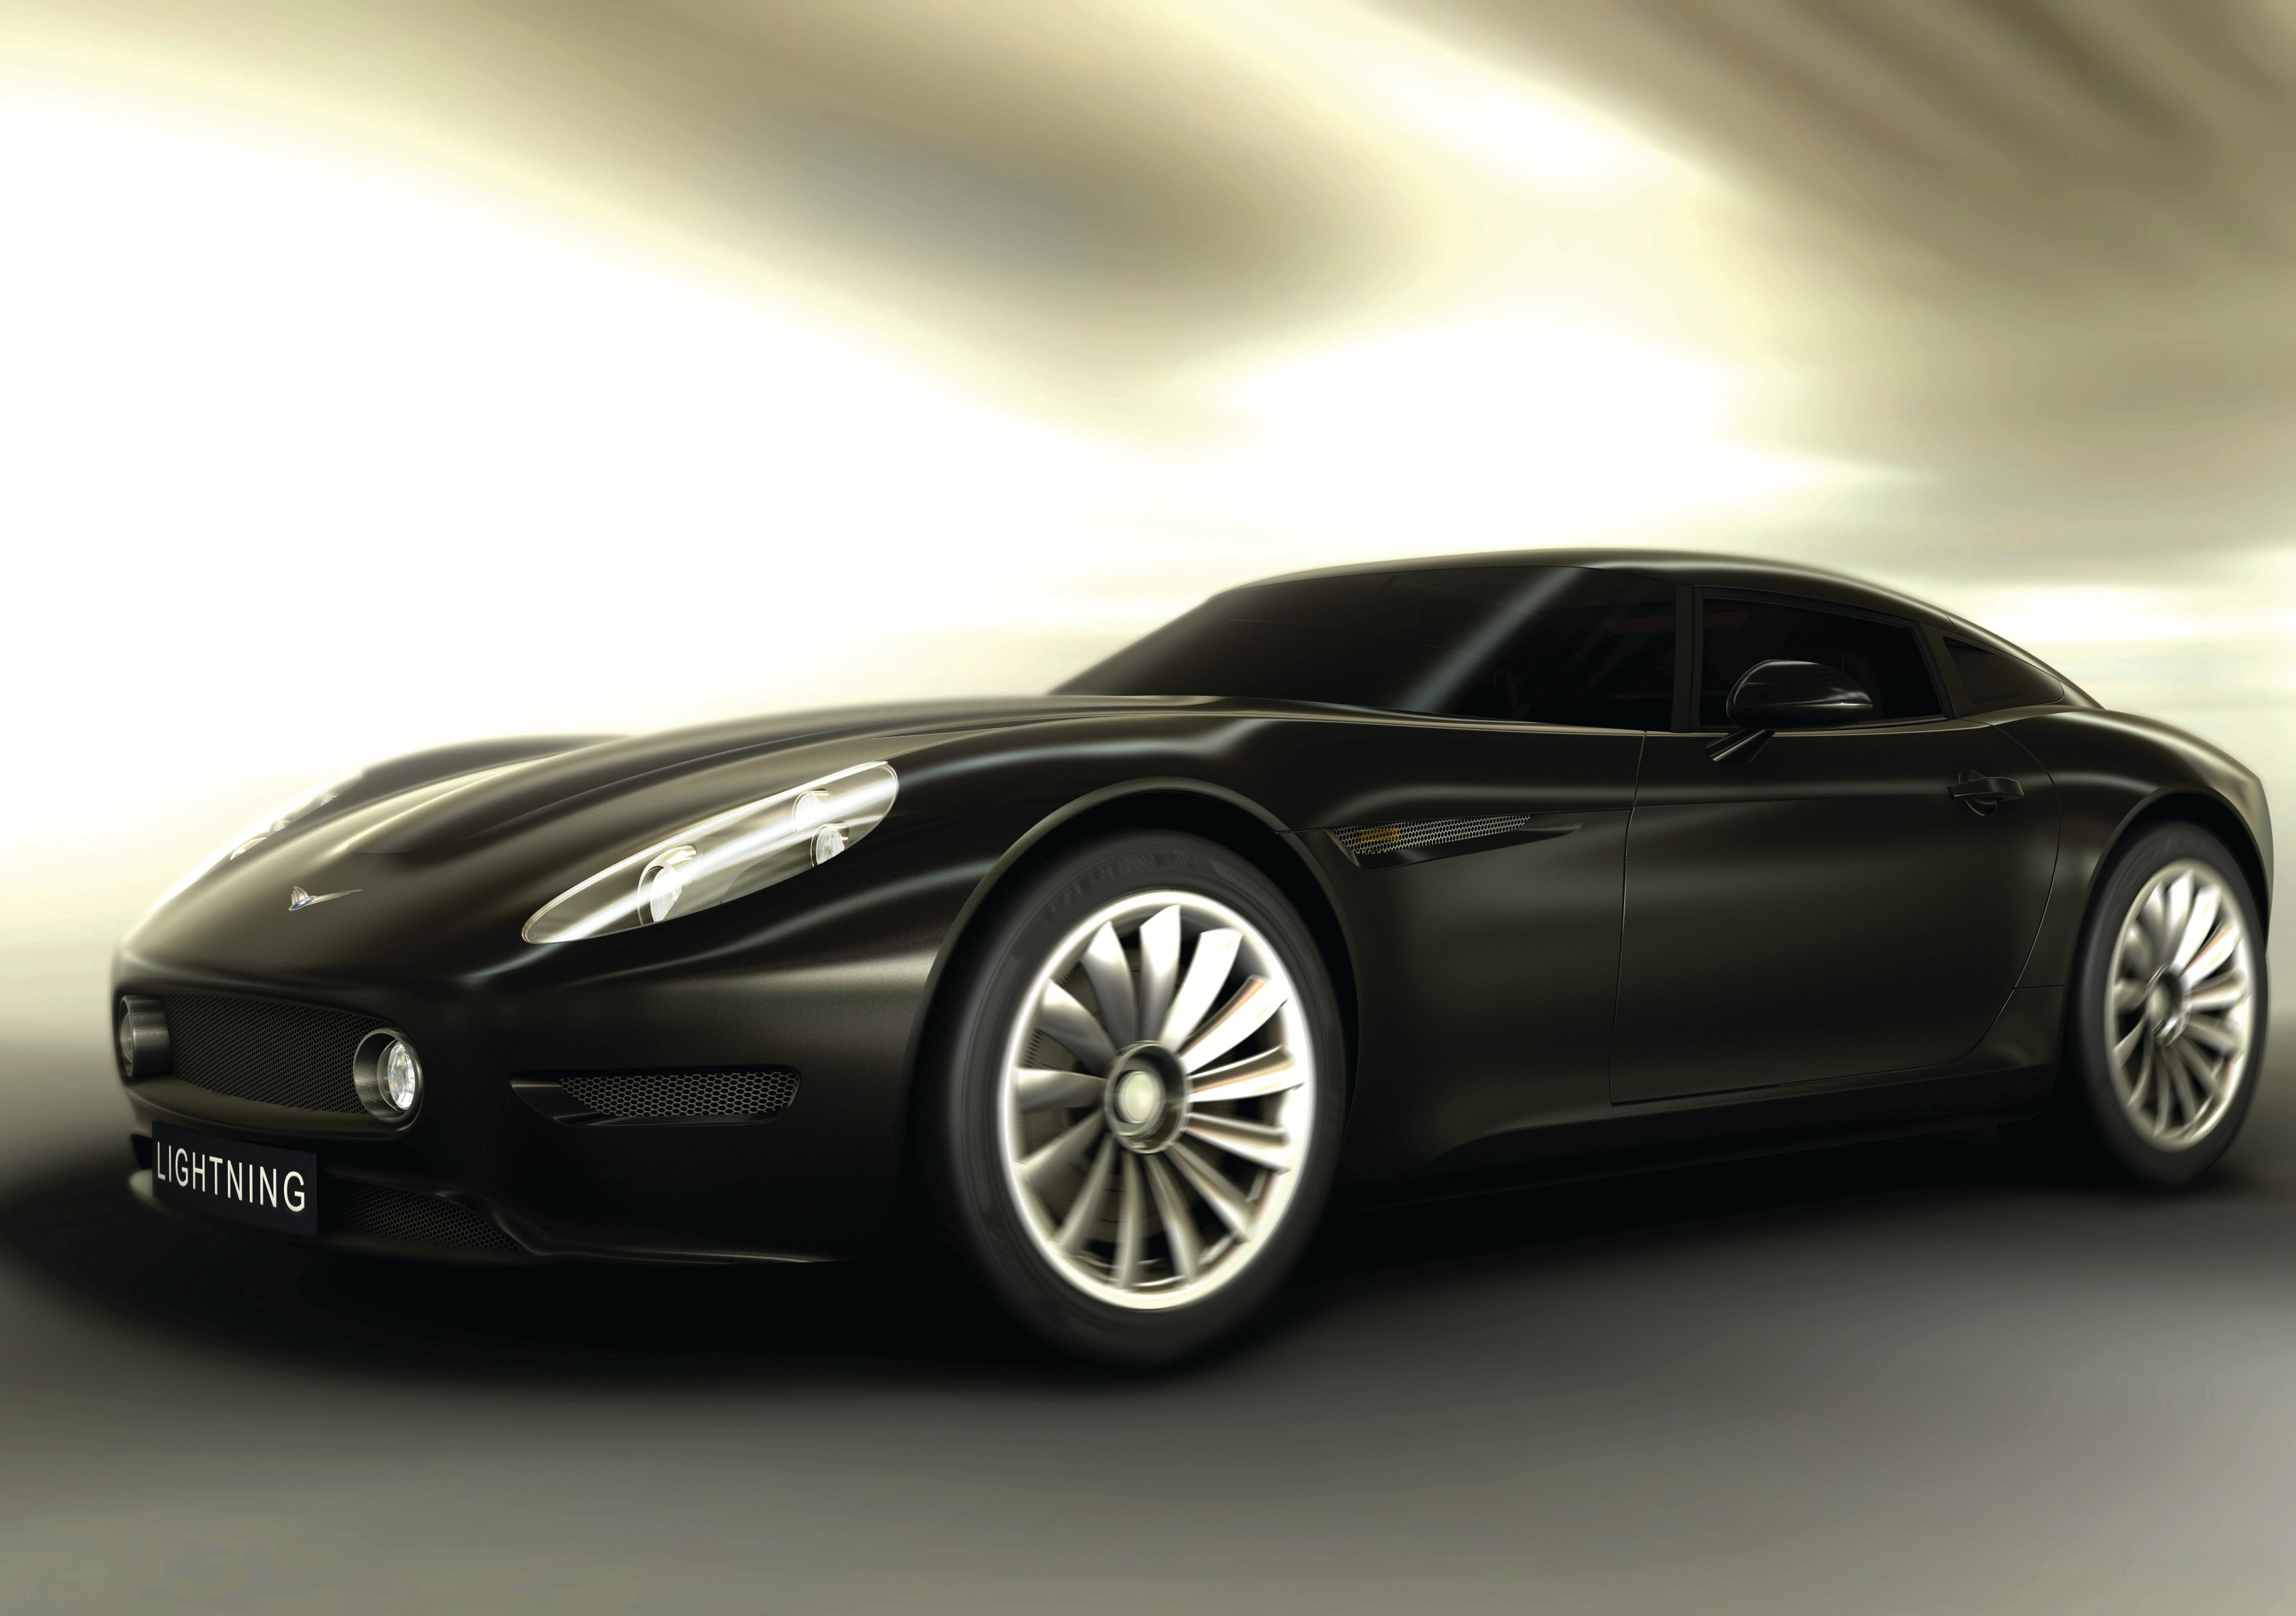 Cars Wallpapers: High Resolution Car Wallpapers